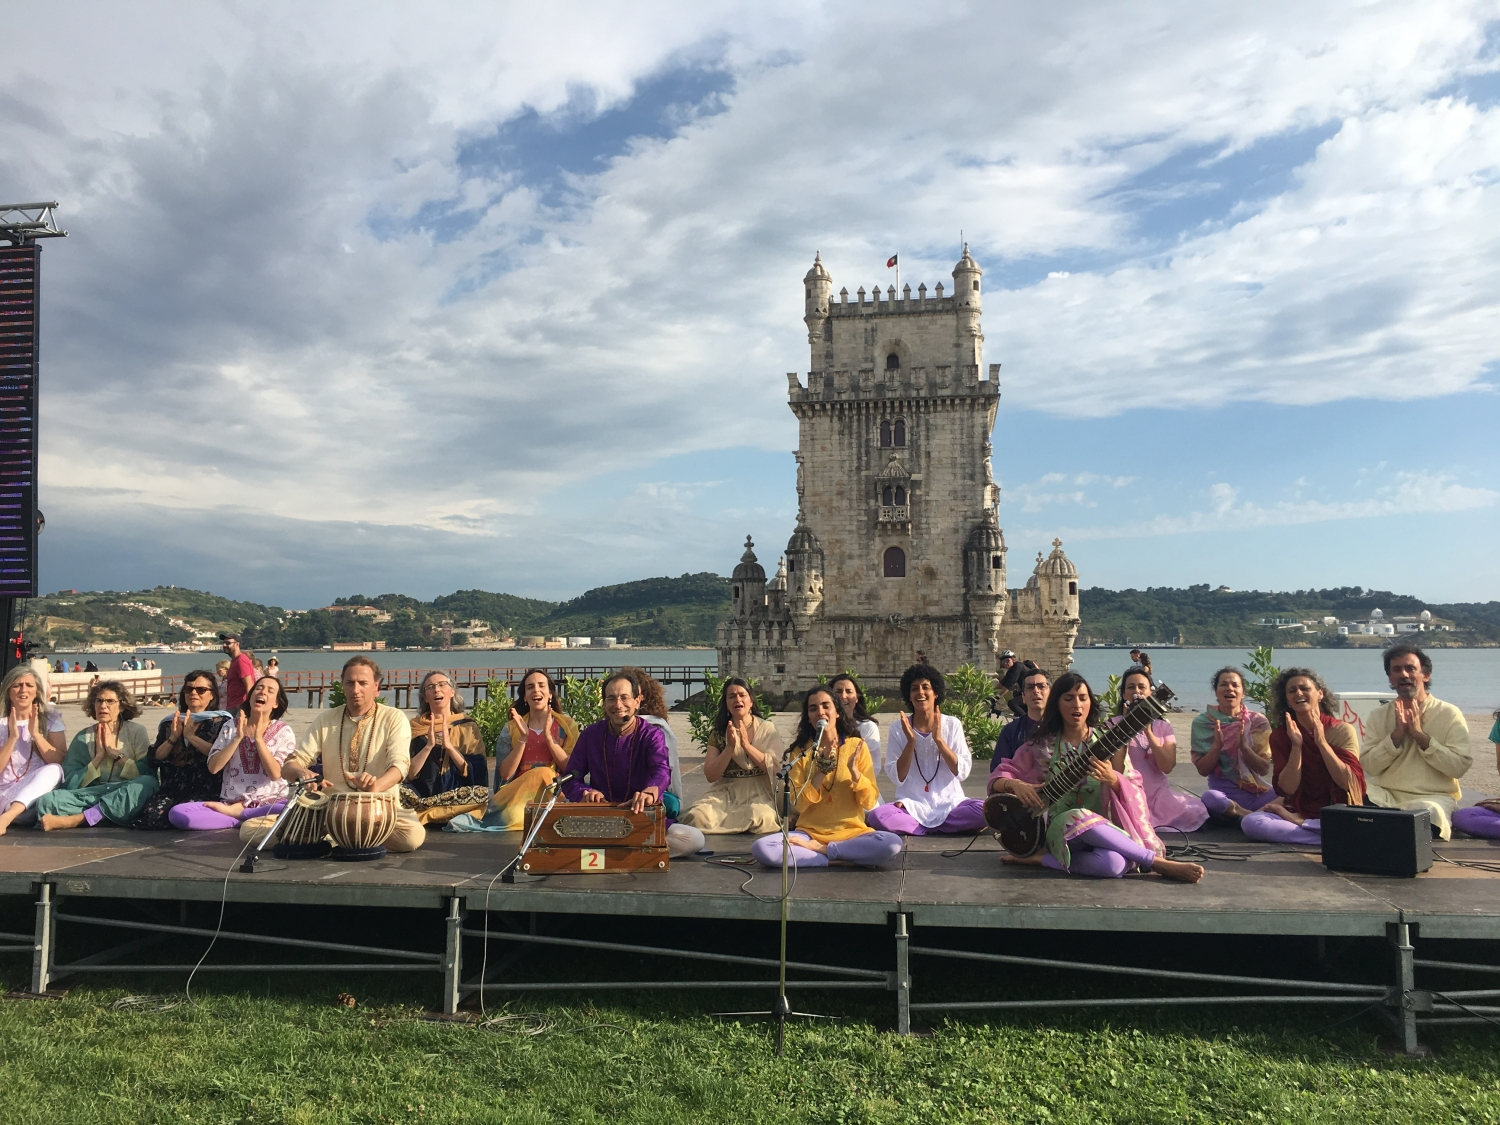 Célébration de l'International Day of Yoga - IDY - 2018, juin, 21 - Belém, Portugal